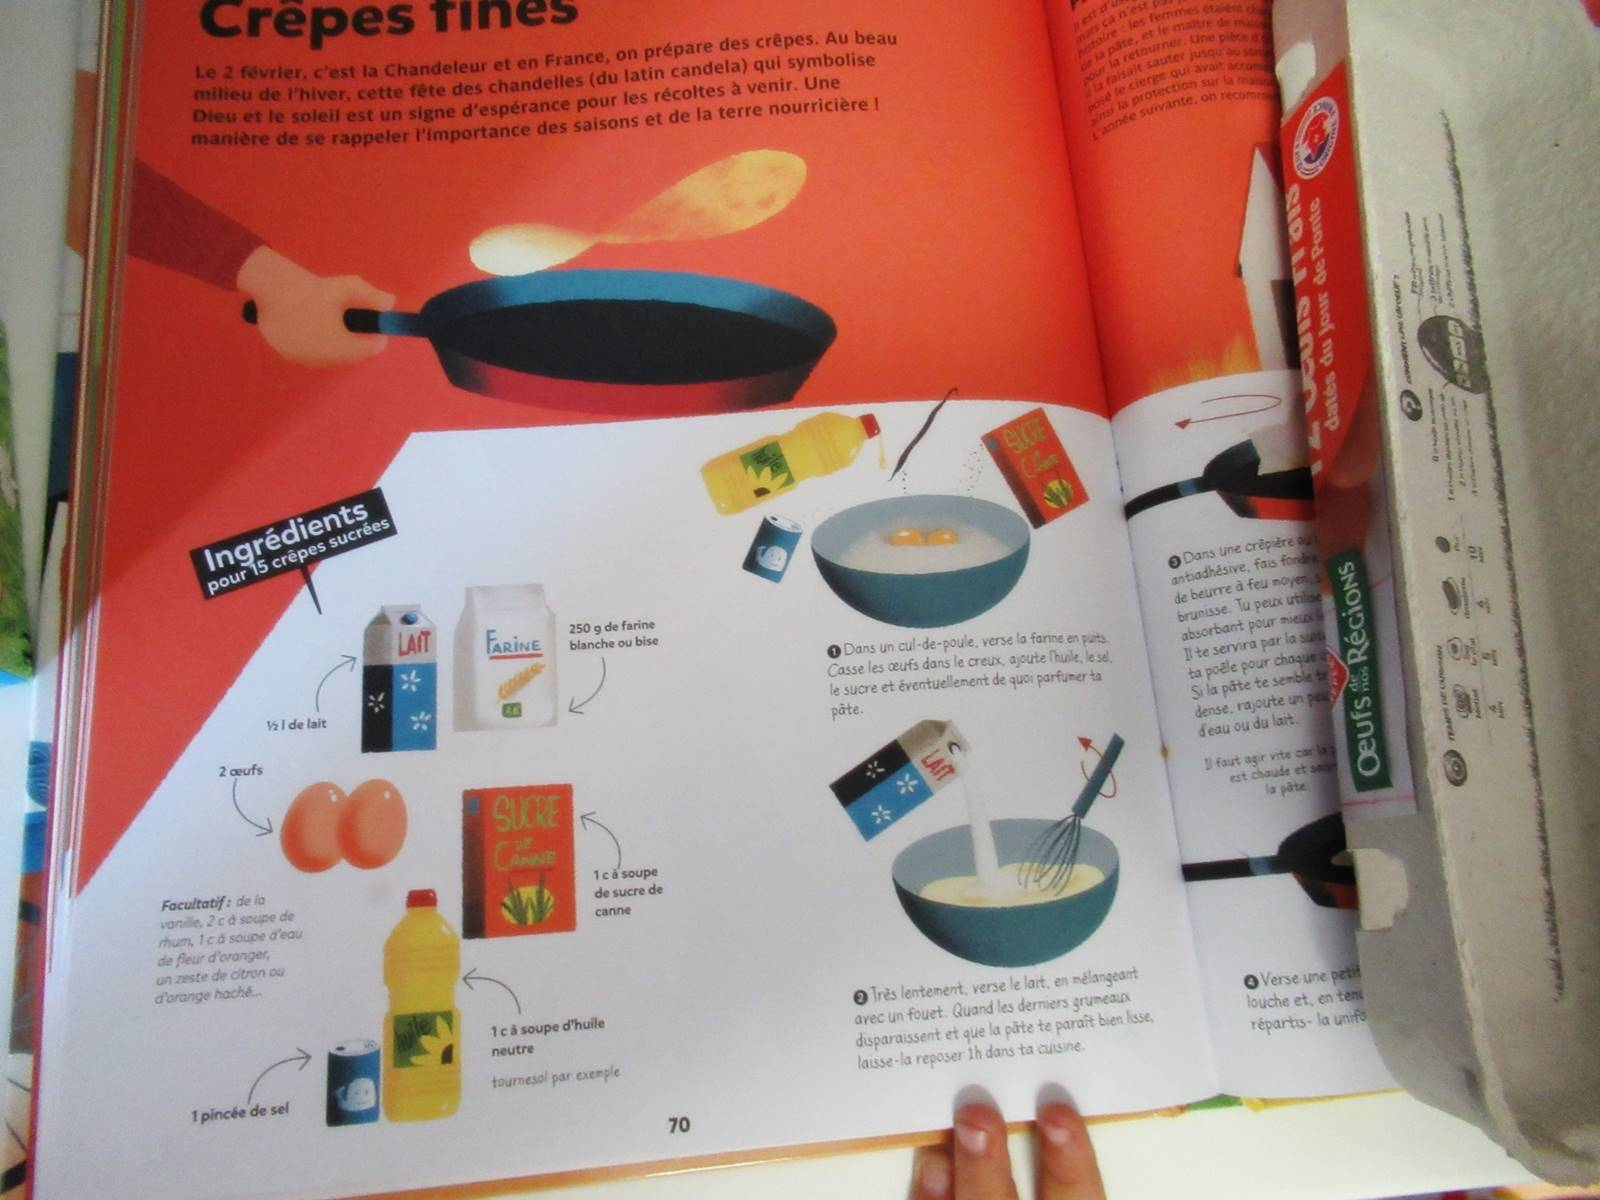 Recette bacon oeuf crepe ief 6